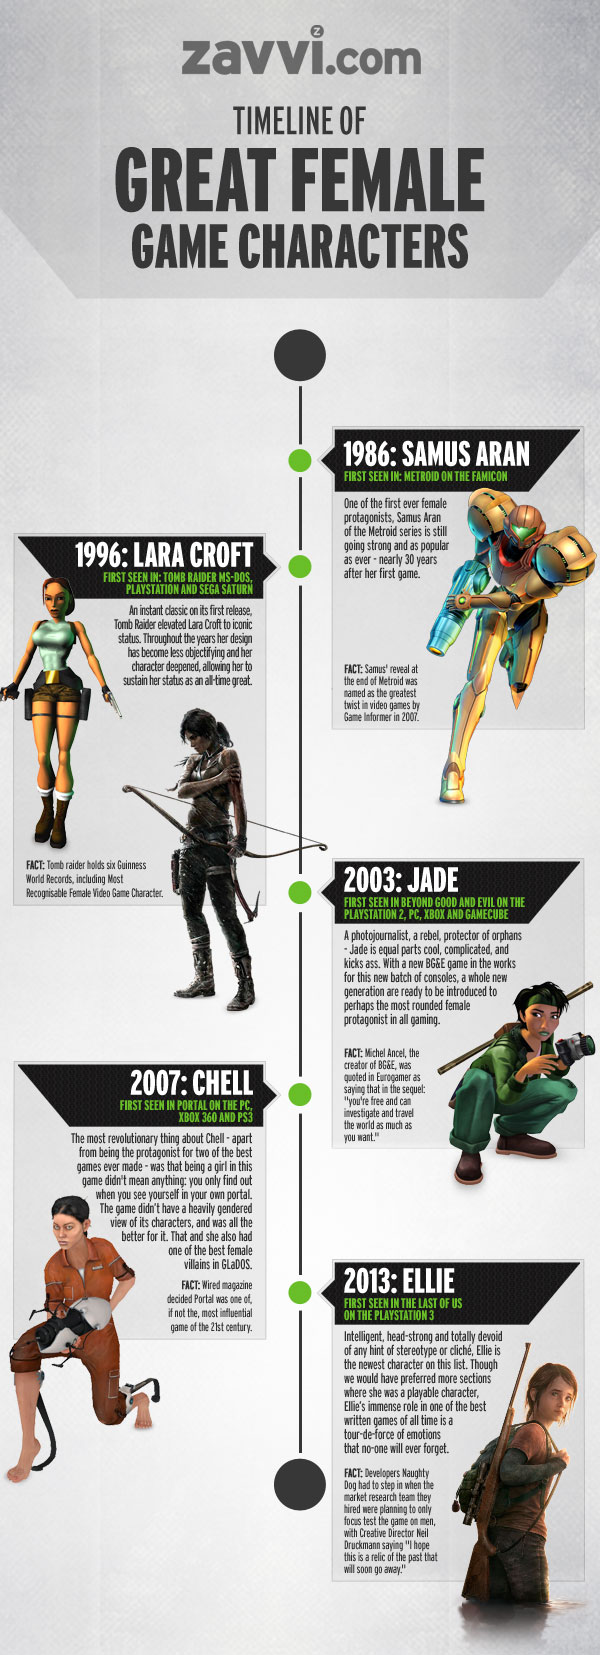 Great Female Game Characters